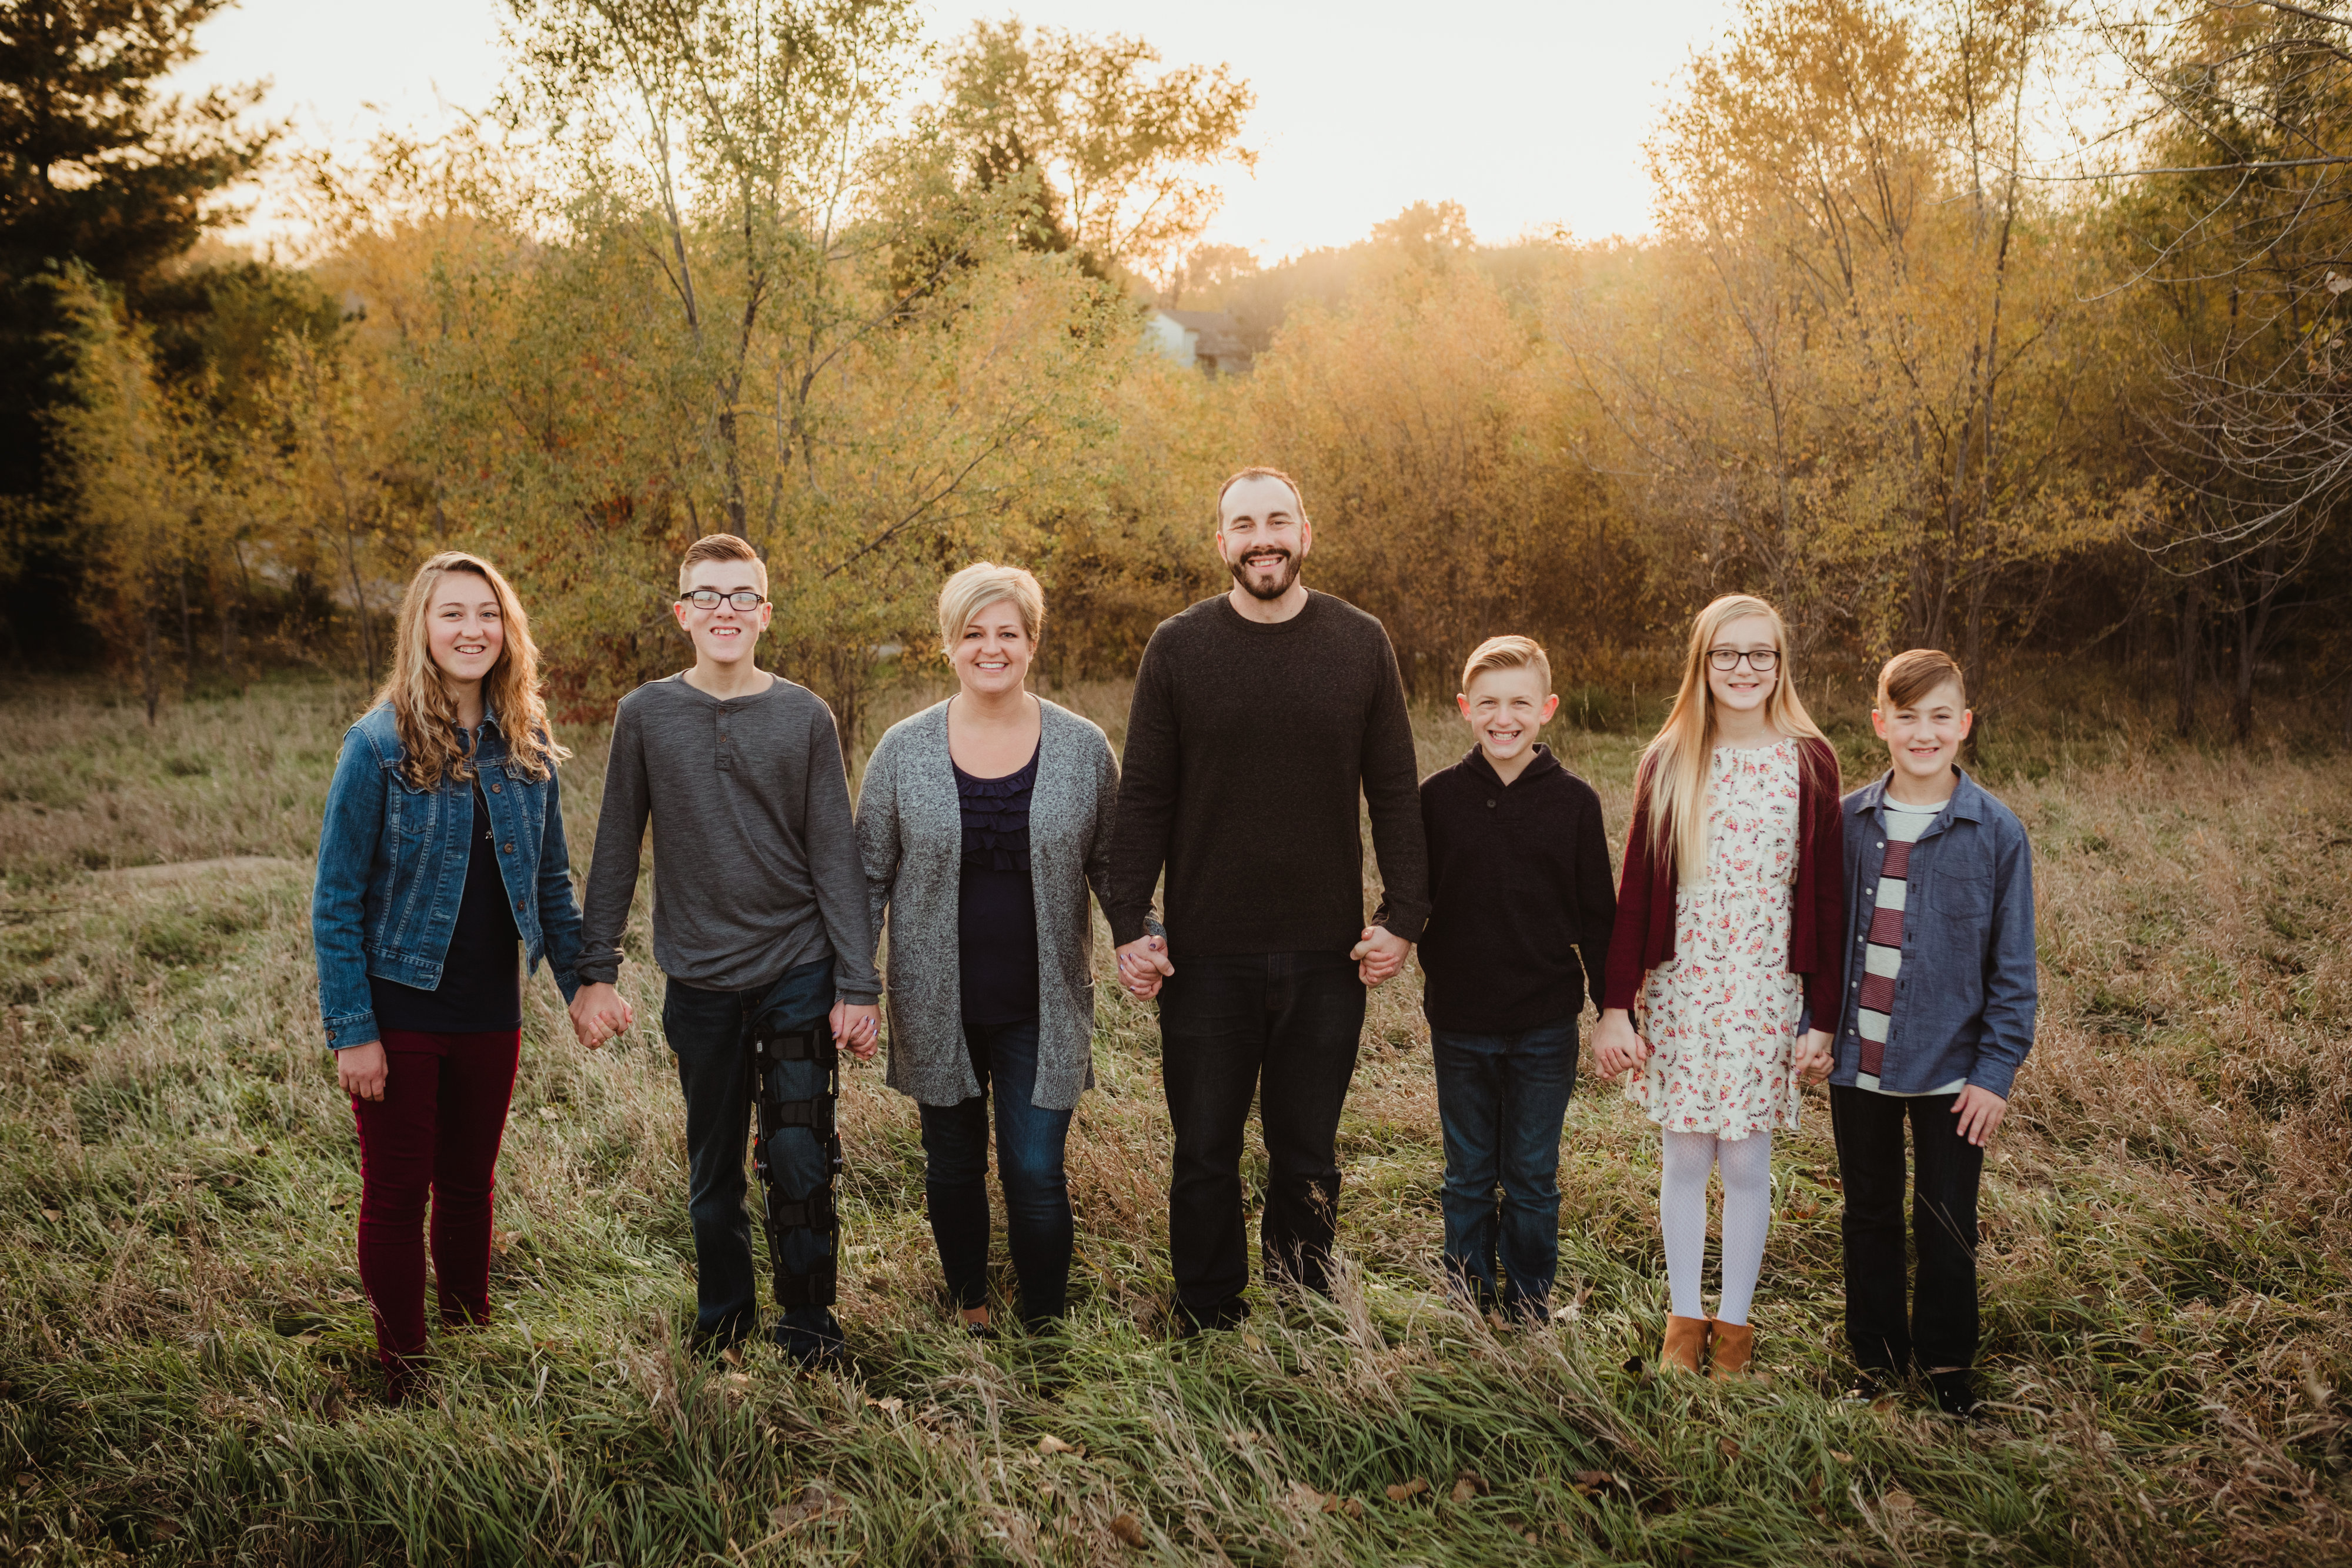 Sallinger Family Session 2018-Sallinger Family 2018-0059.jpg